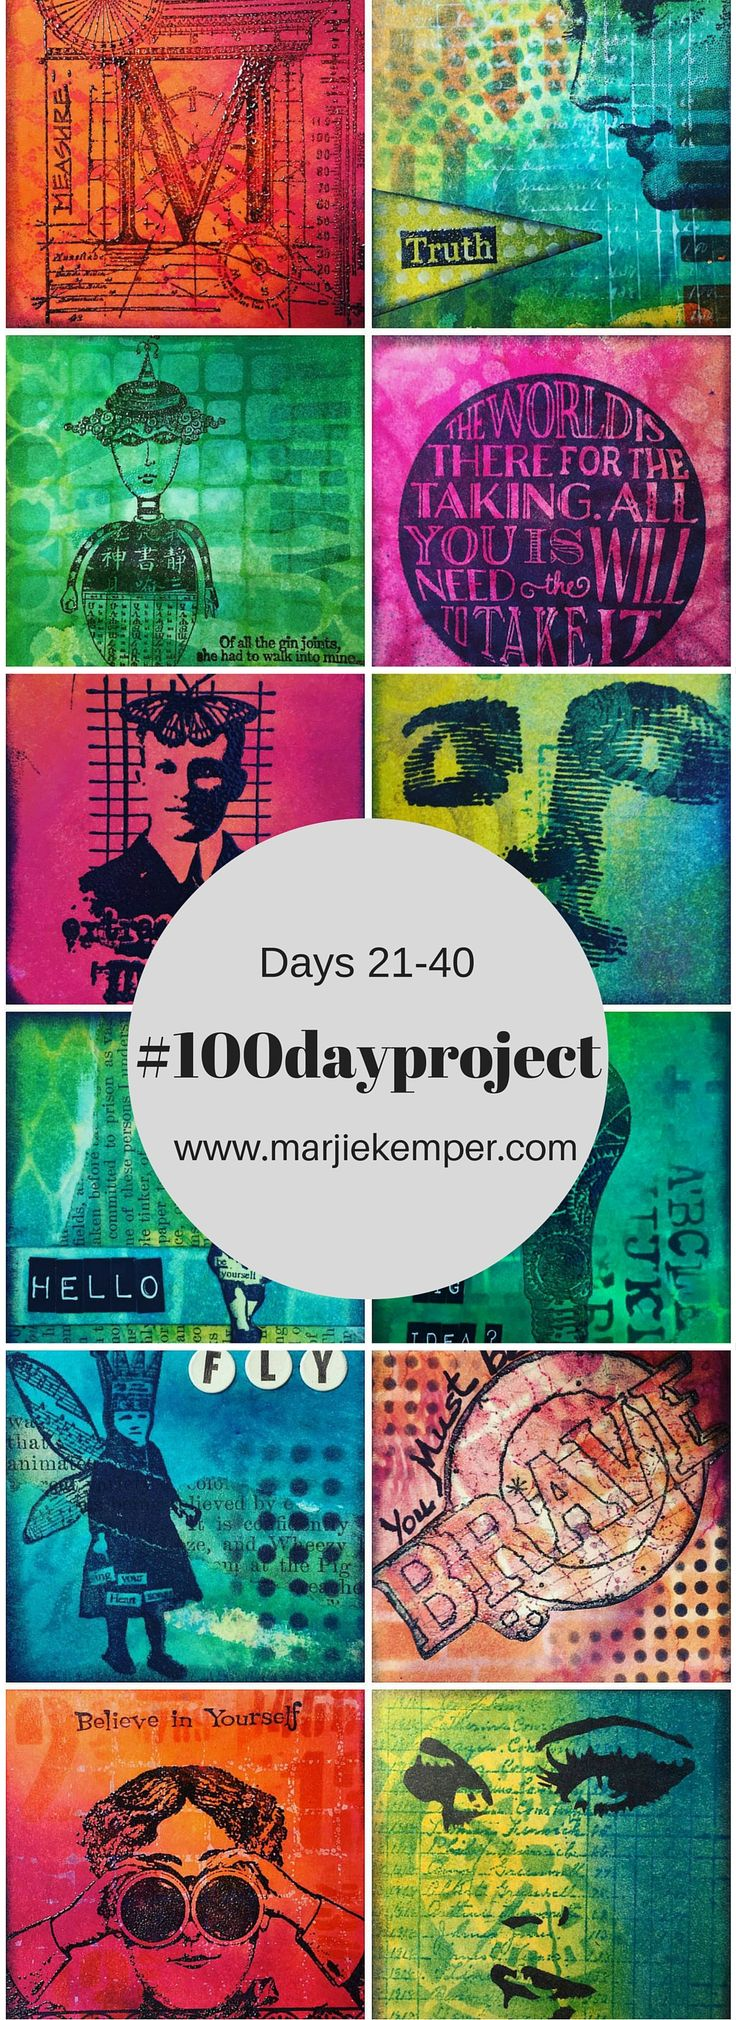 #100dayproject by Marjie Kemper using small squares for art